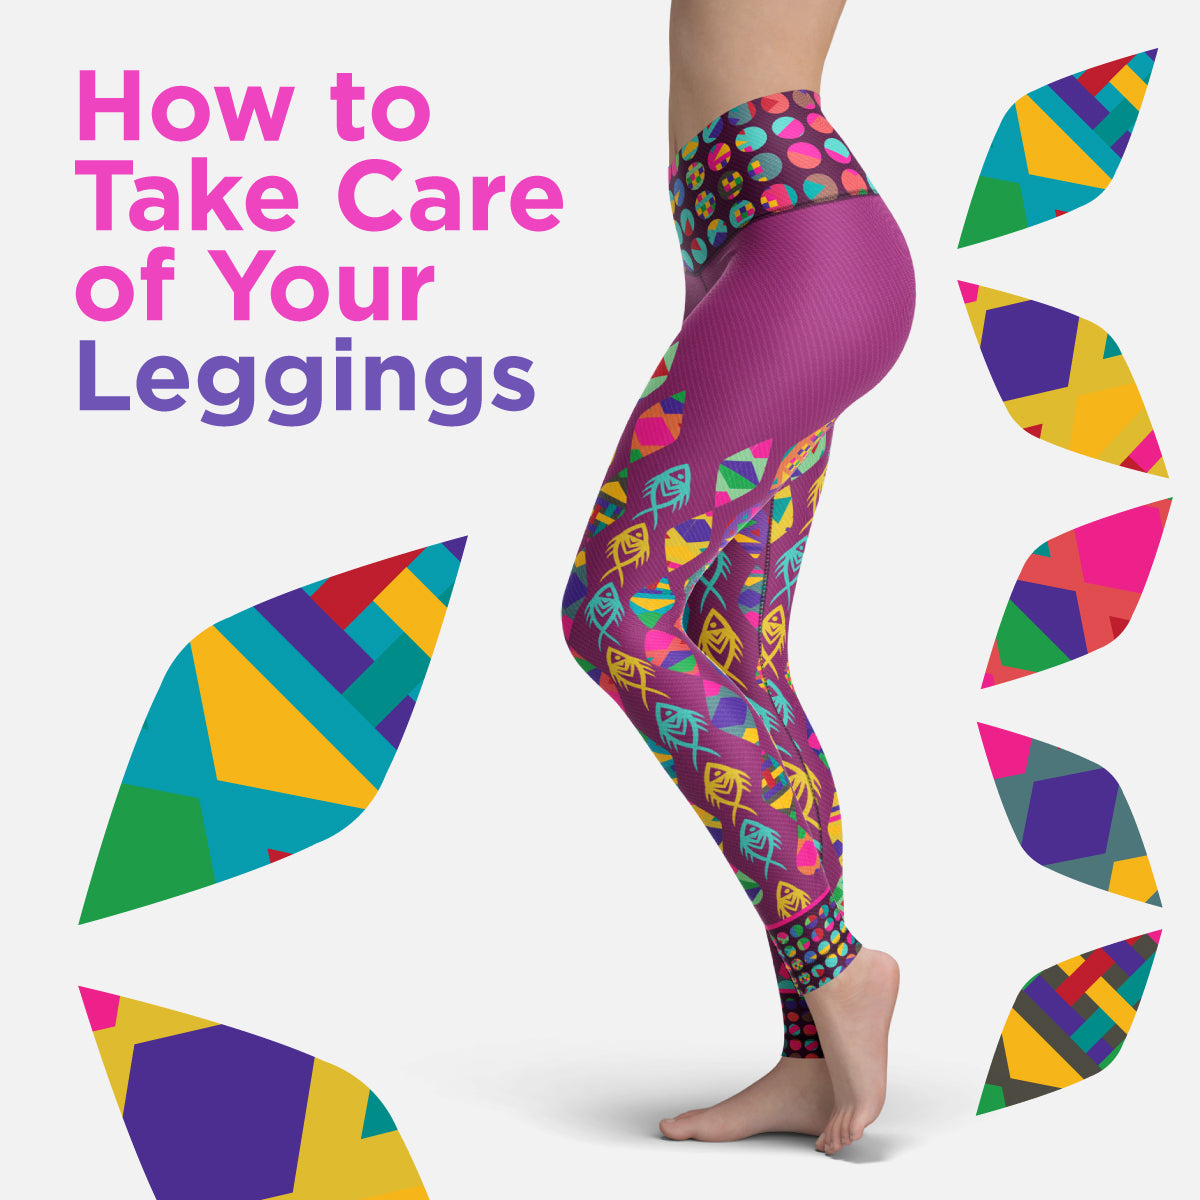 How to take care of your leggings